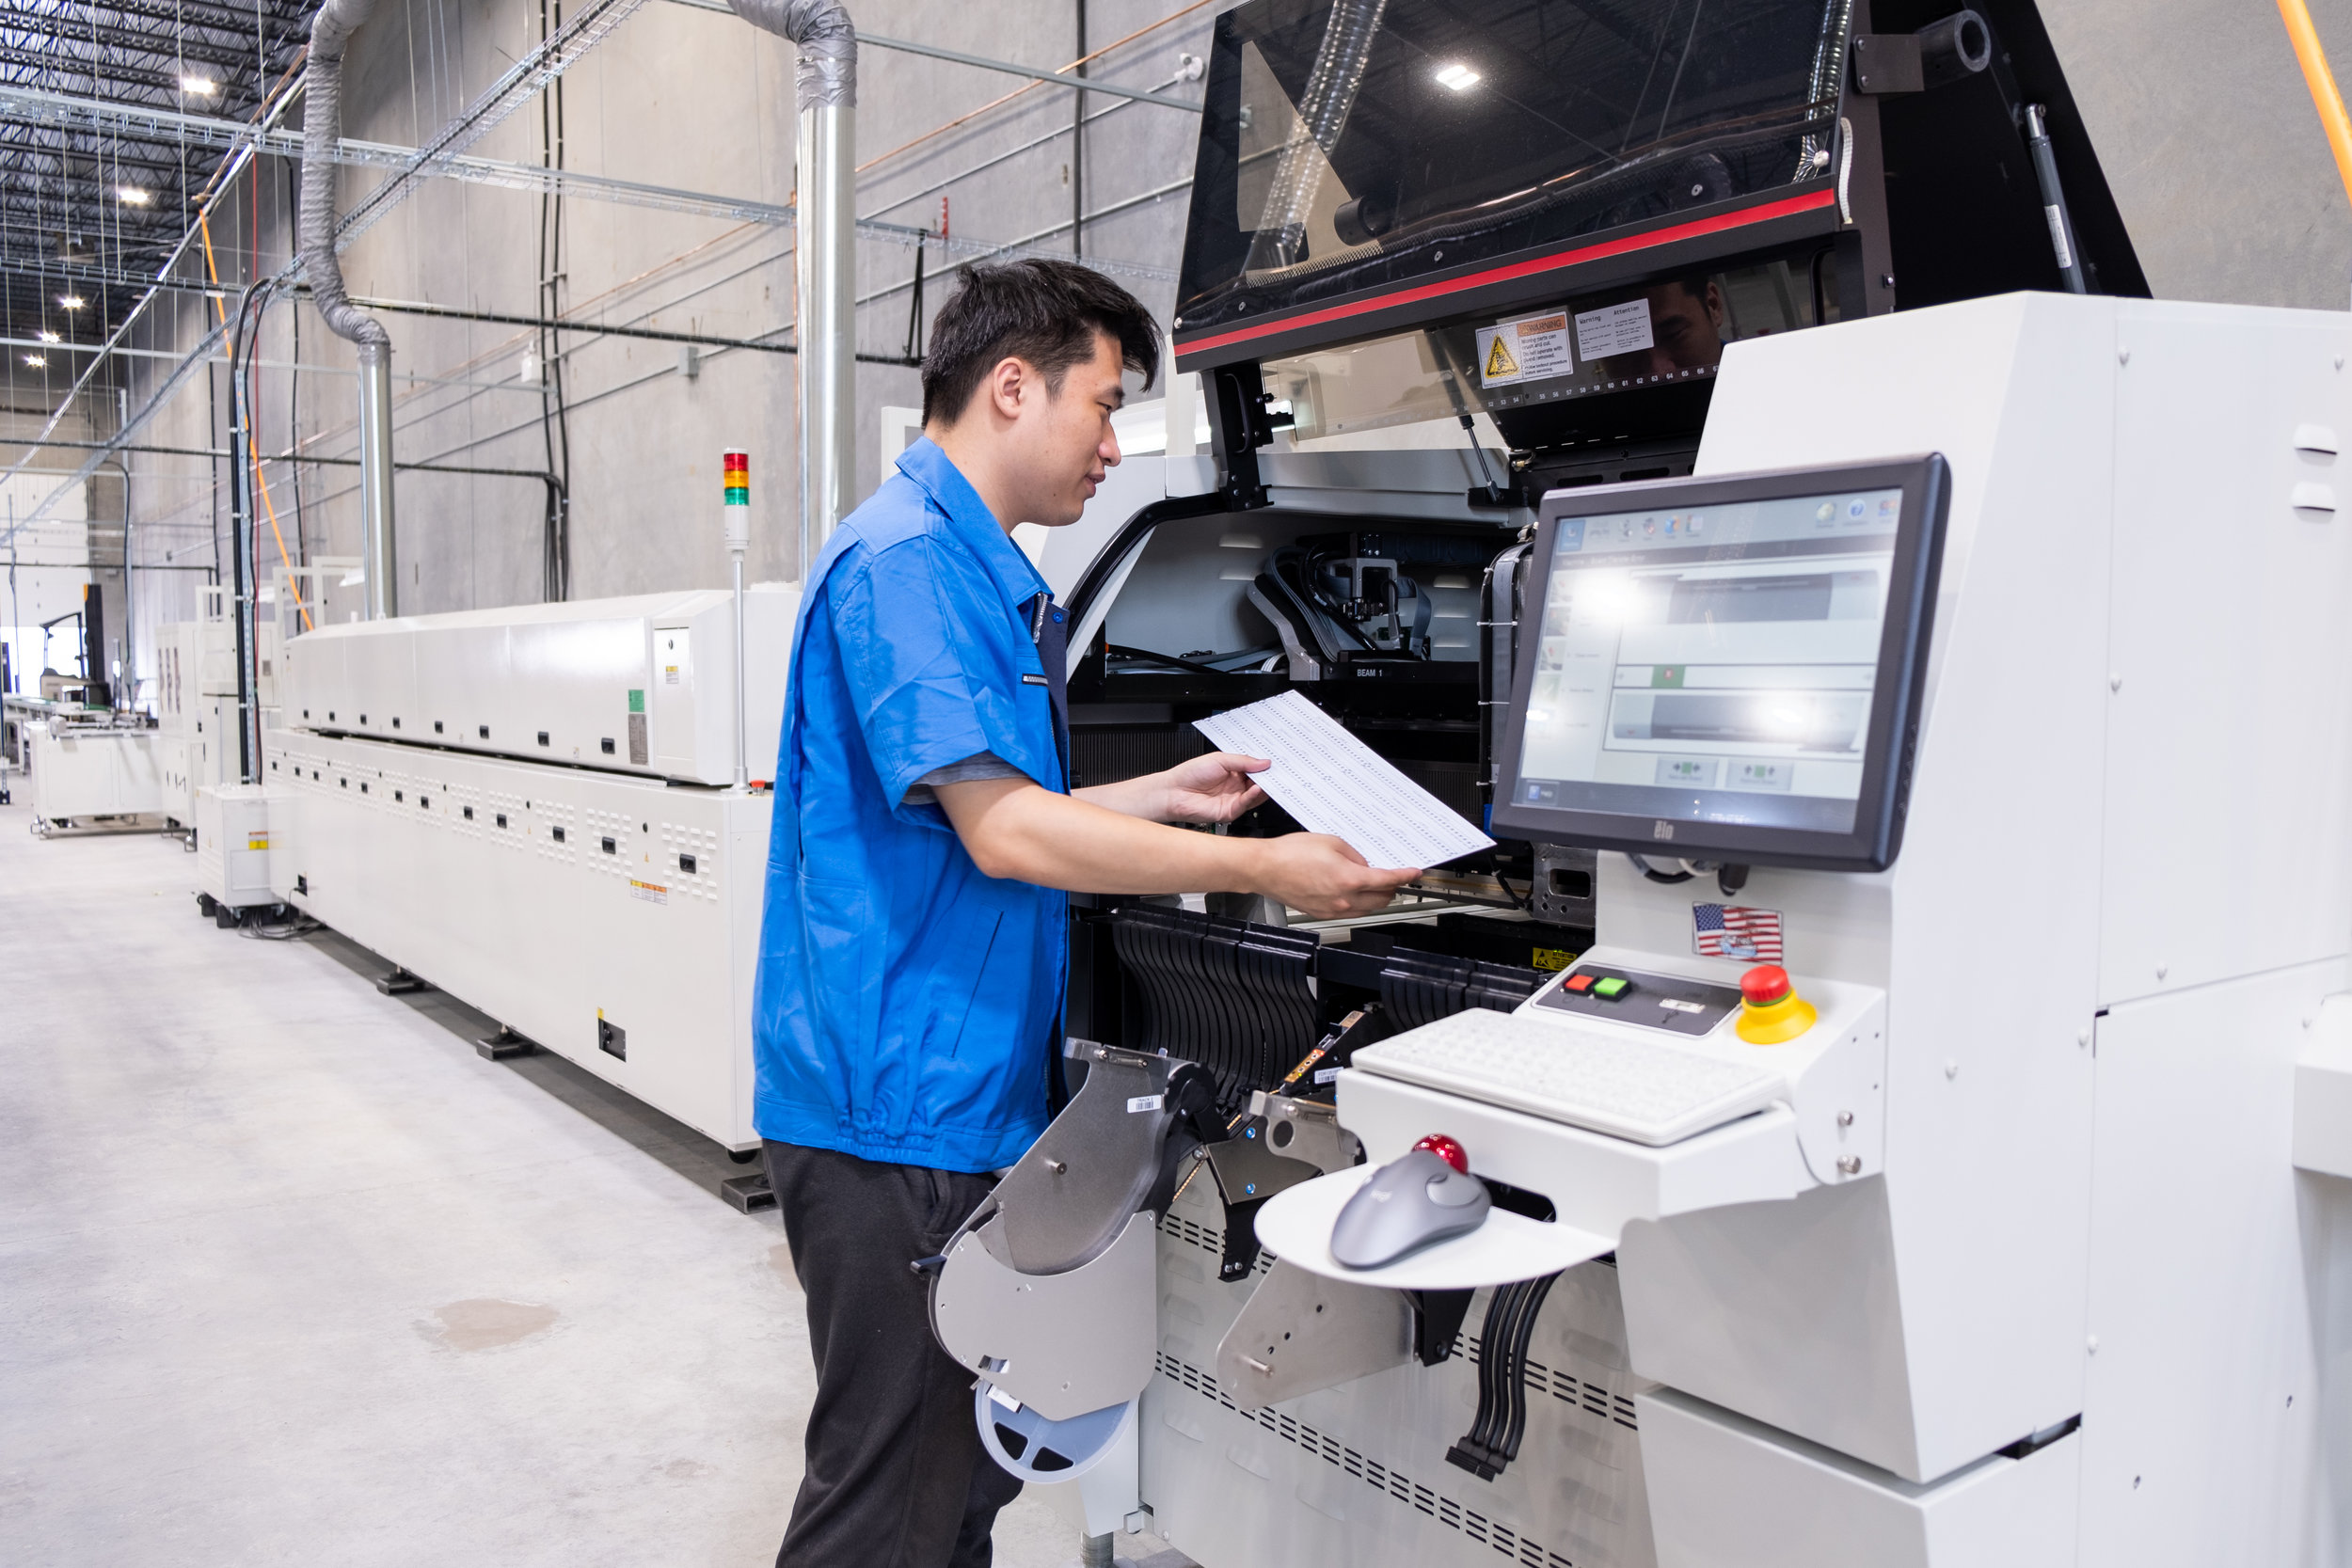 Sophisticated semi-automated and automated manufacturing lines allow for high speed, high quality production.